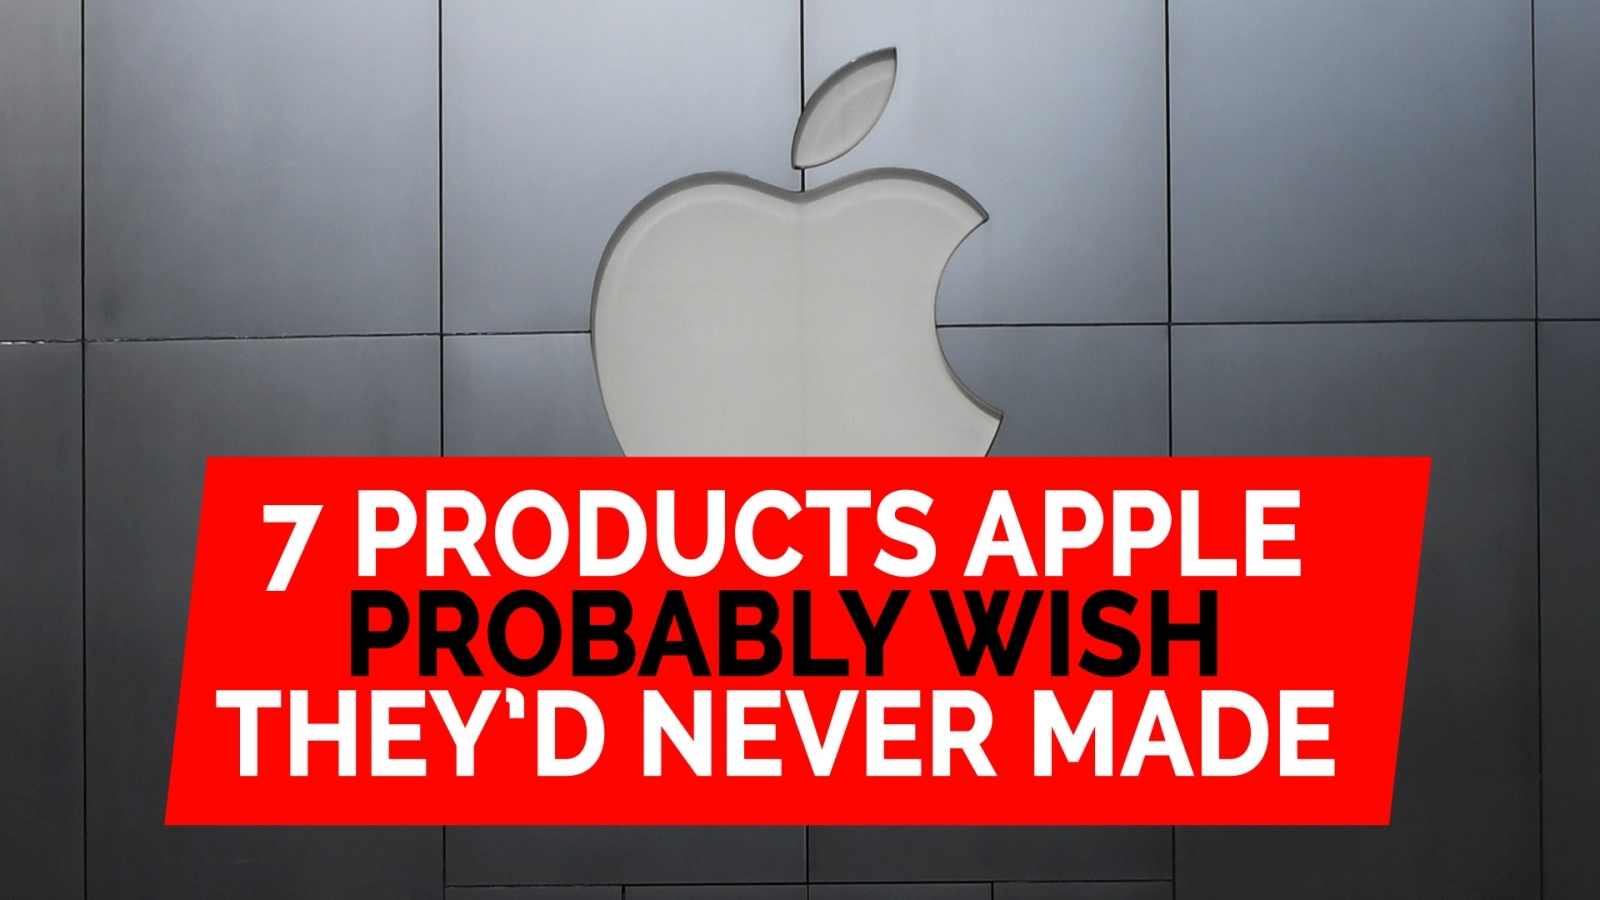 7 products Apple probably wish they'd never made